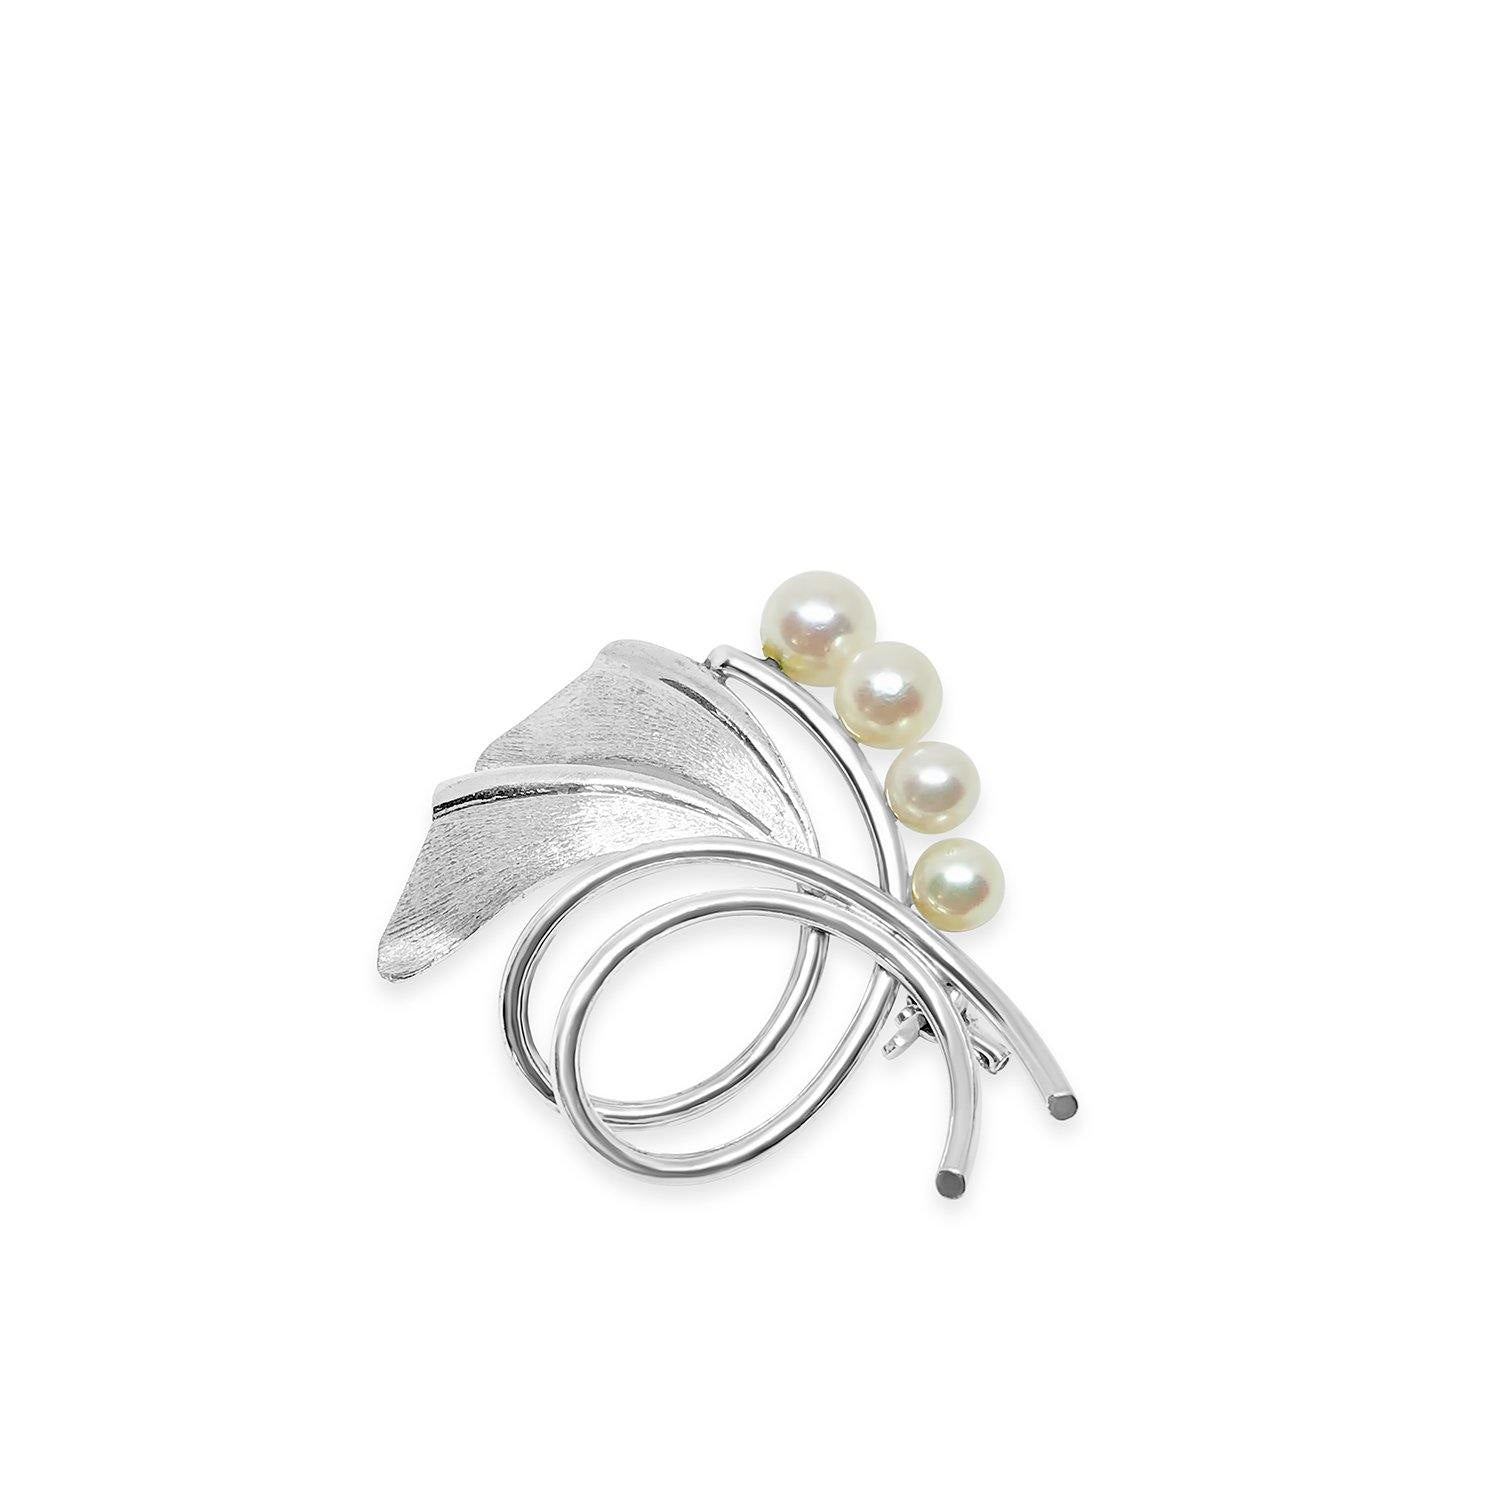 Mikimoto Ginko Leaf Japanese Cultured Saltwater Akoya Pearl Brooch- Sterling Silver